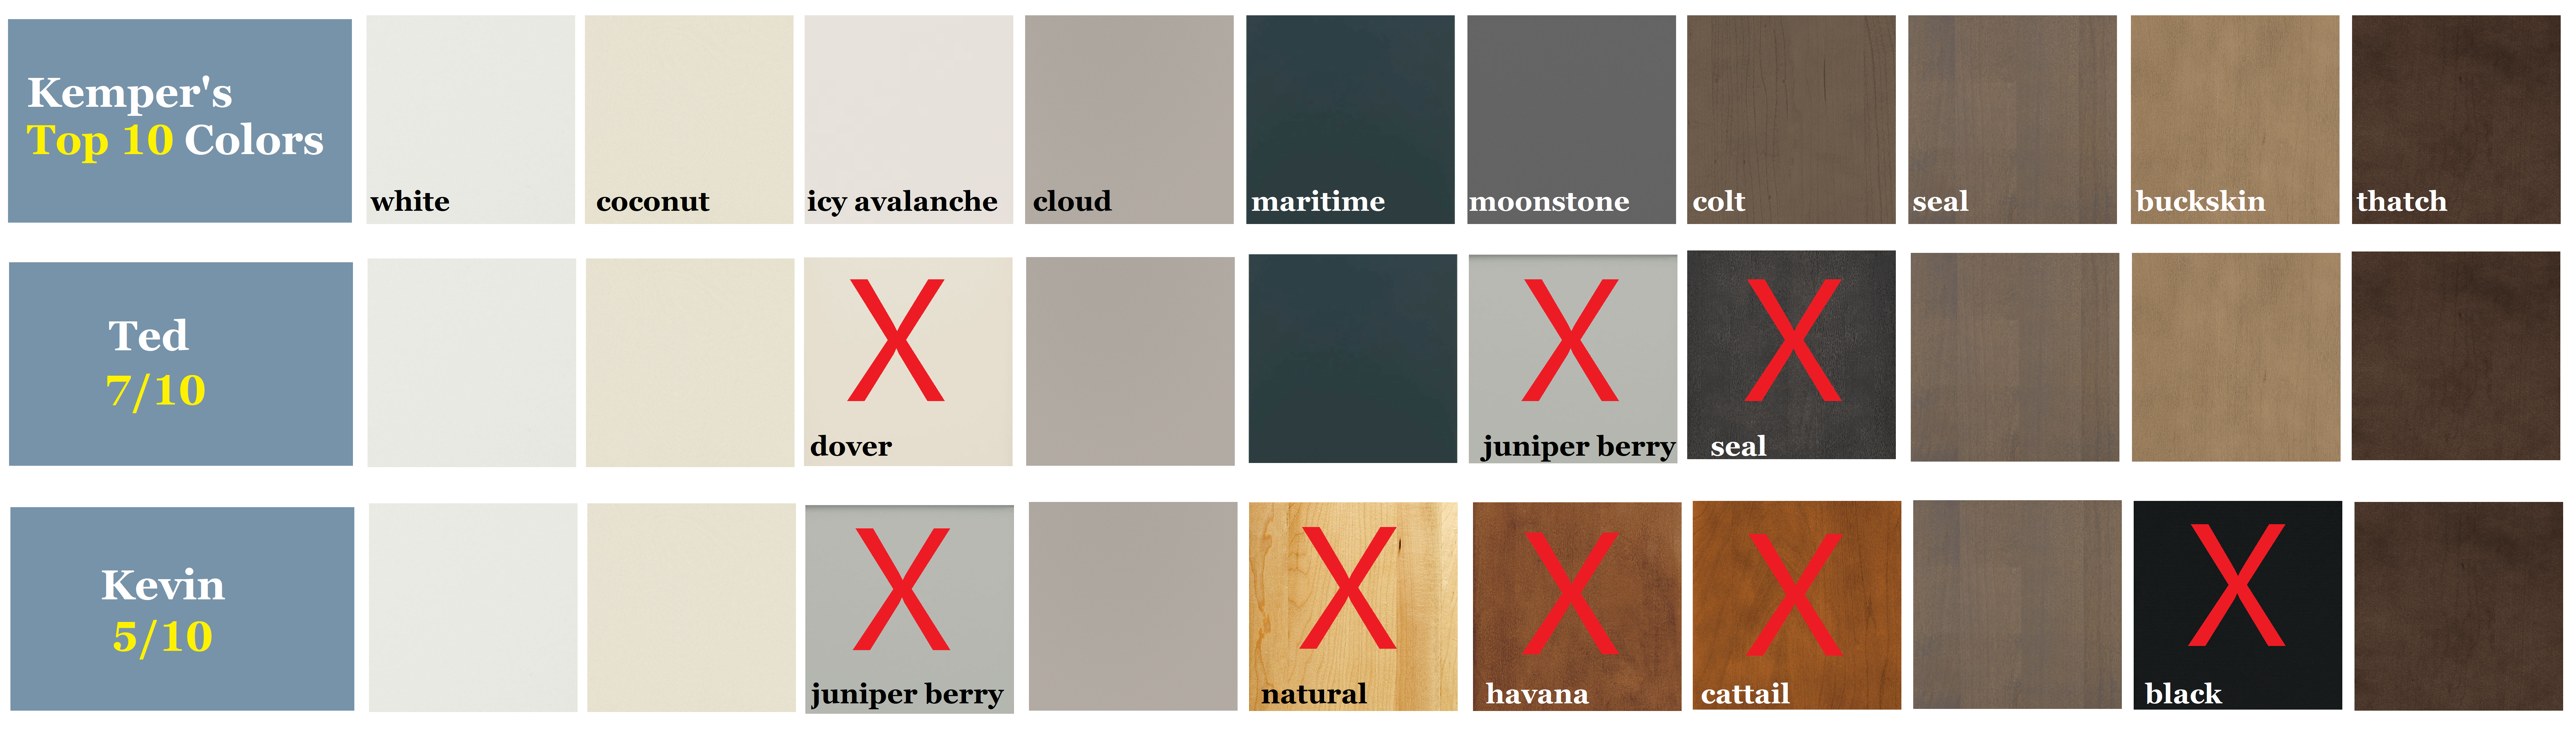 Kemper Cabinet's Top 10 Colors/ Finishes